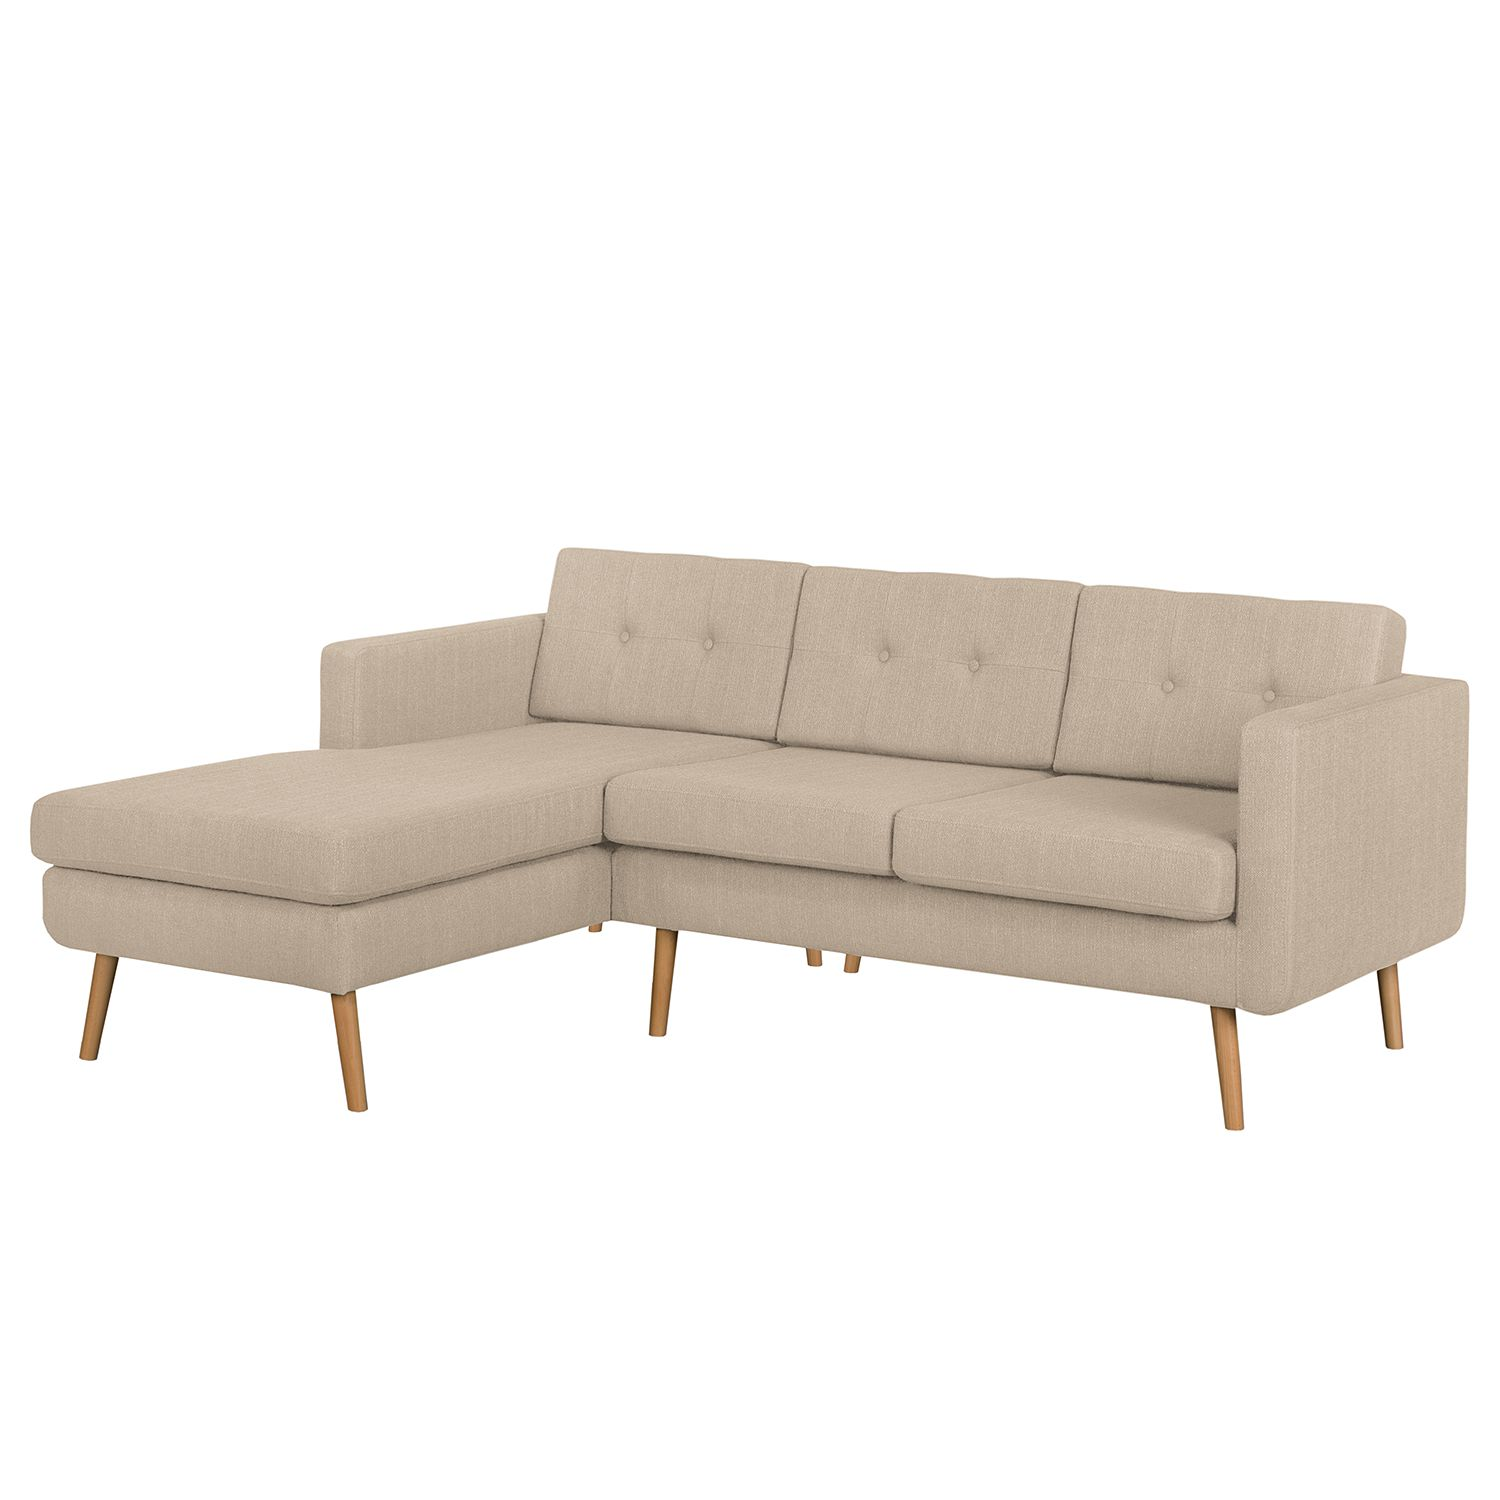 Morteens Ecksofa Ecksofa Croom Webstoff Longchair Davorstehend Links Ohne Hocker